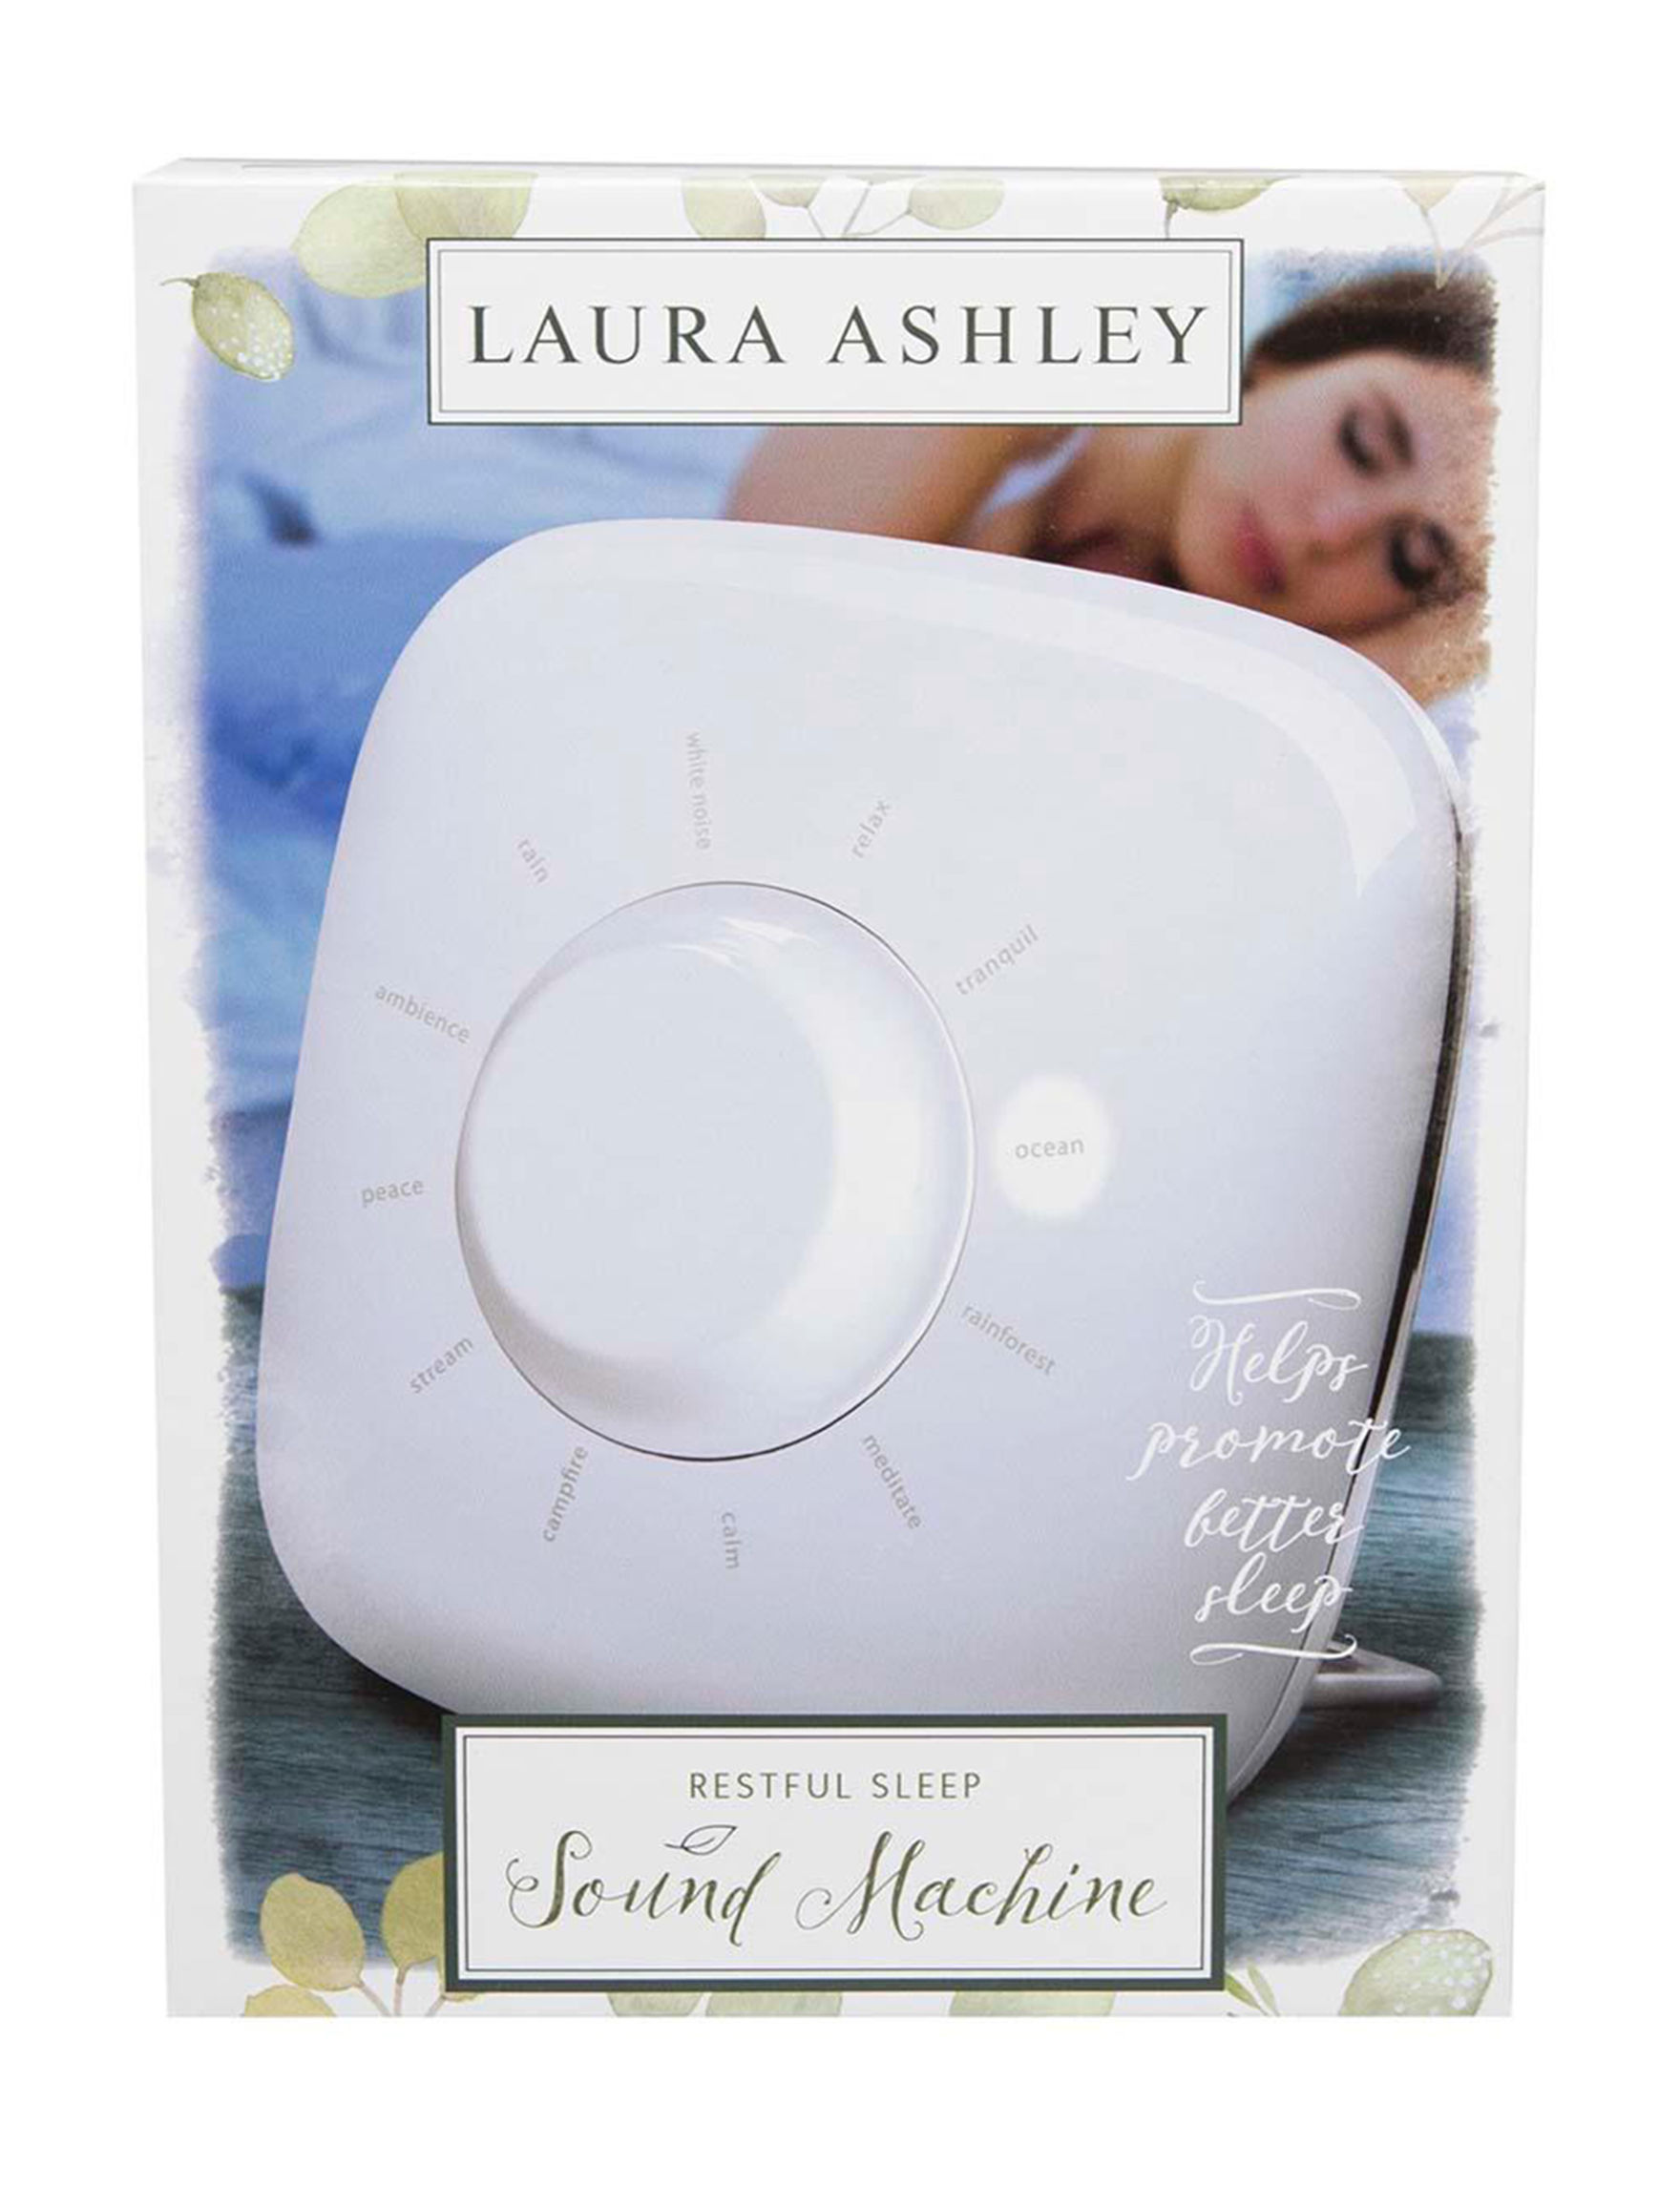 Laura Ashley Miscellaneous Travel Accessories